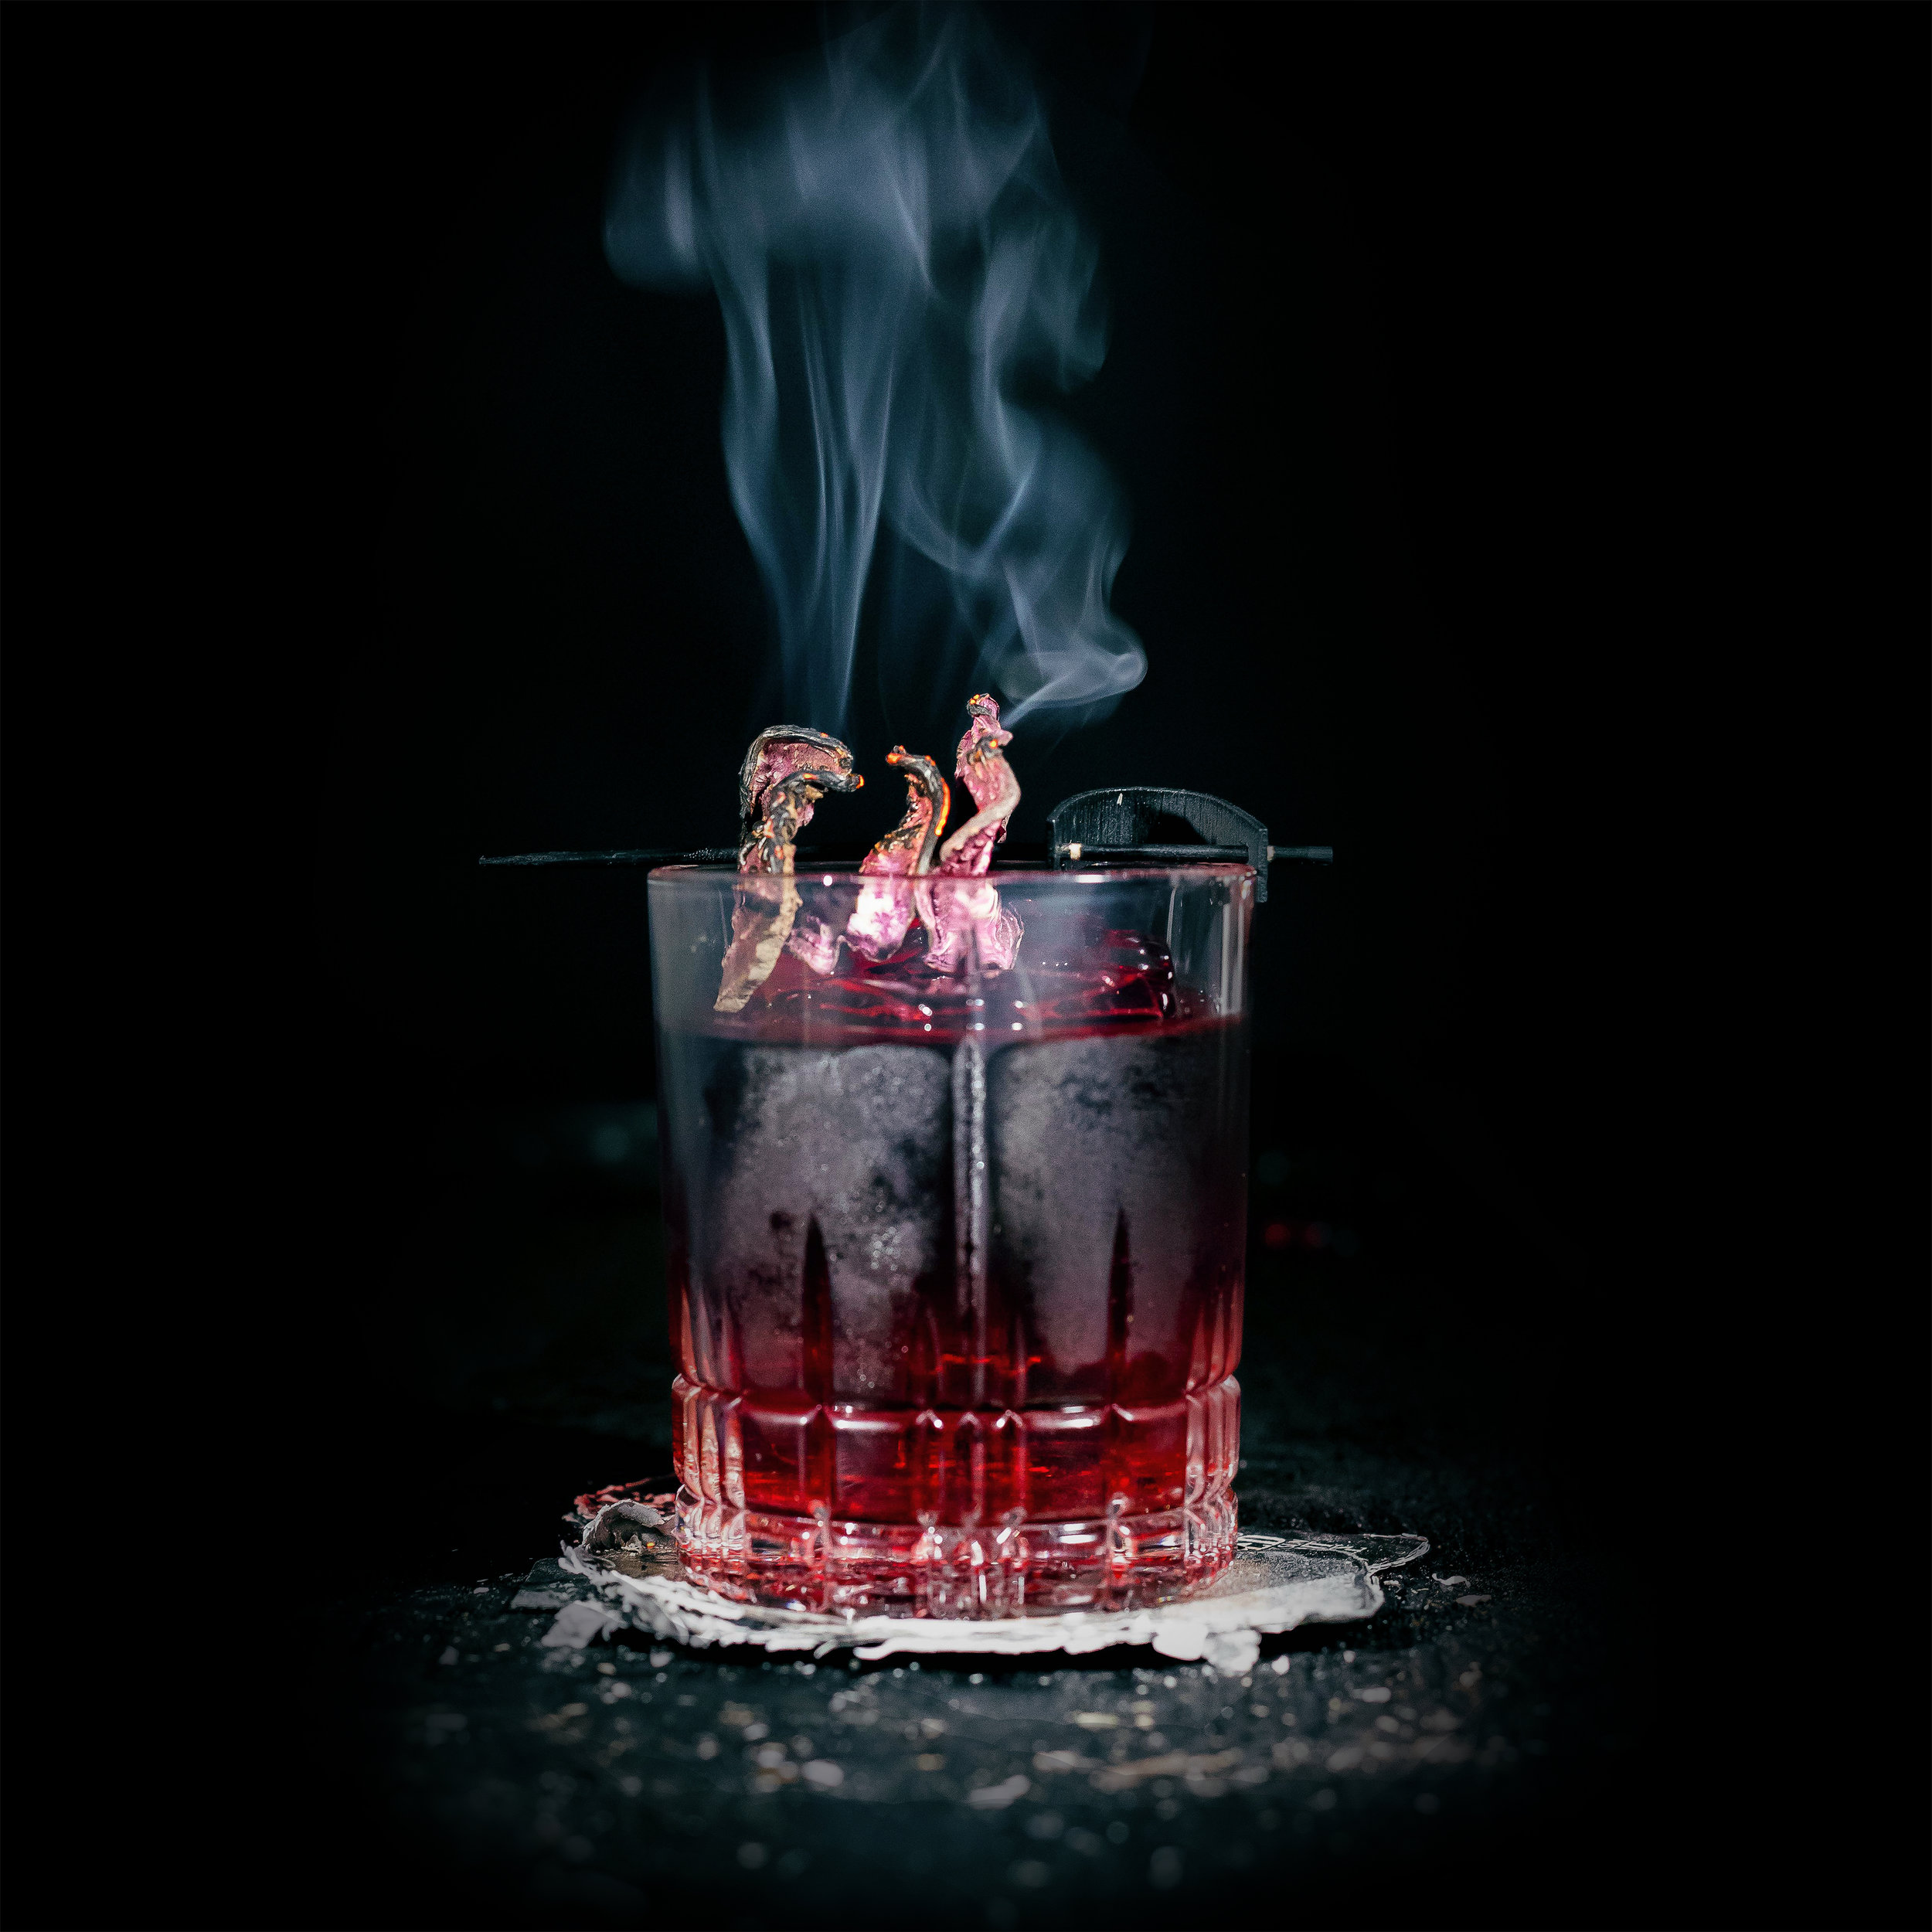 OAXACAN BEET NEGRONI  INGREDIENTS  - 1 oz. Beet infused El Silencio Espadin* - 1 oz. Carpano Antica Formula Vermouth - 1 oz. Campari  METHOD  Stir with ice & Strain Rocks Glass - Orange Peel   * Beet infused El Silencio Espadin *  - 9 Beets(rough chopped) - 1 bottle ES Espadin (750 ml) Combine ingredients and let sit for 48 hours. Fine strain and bottle.